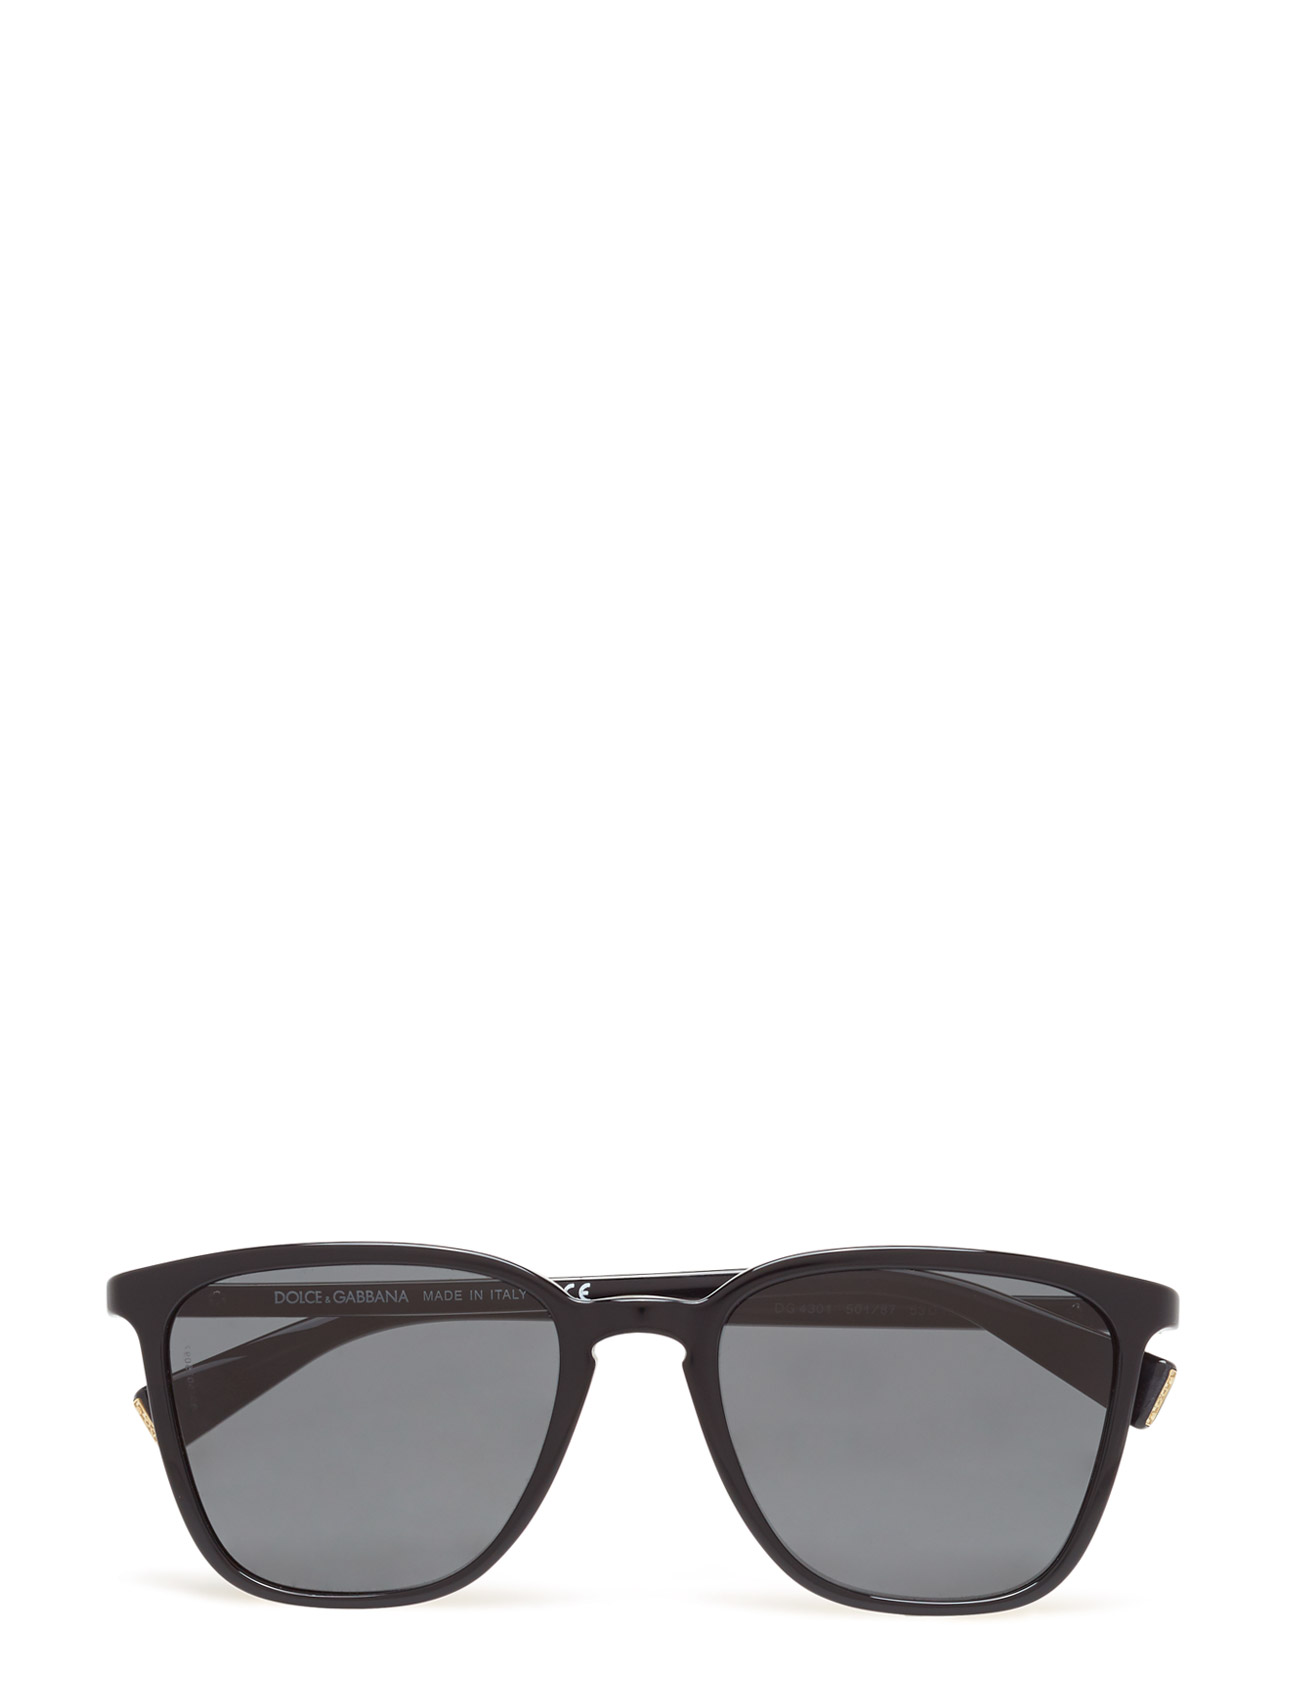 Not Defined Dolce & Gabbana Sunglasses Solbriller til Herrer i Sort